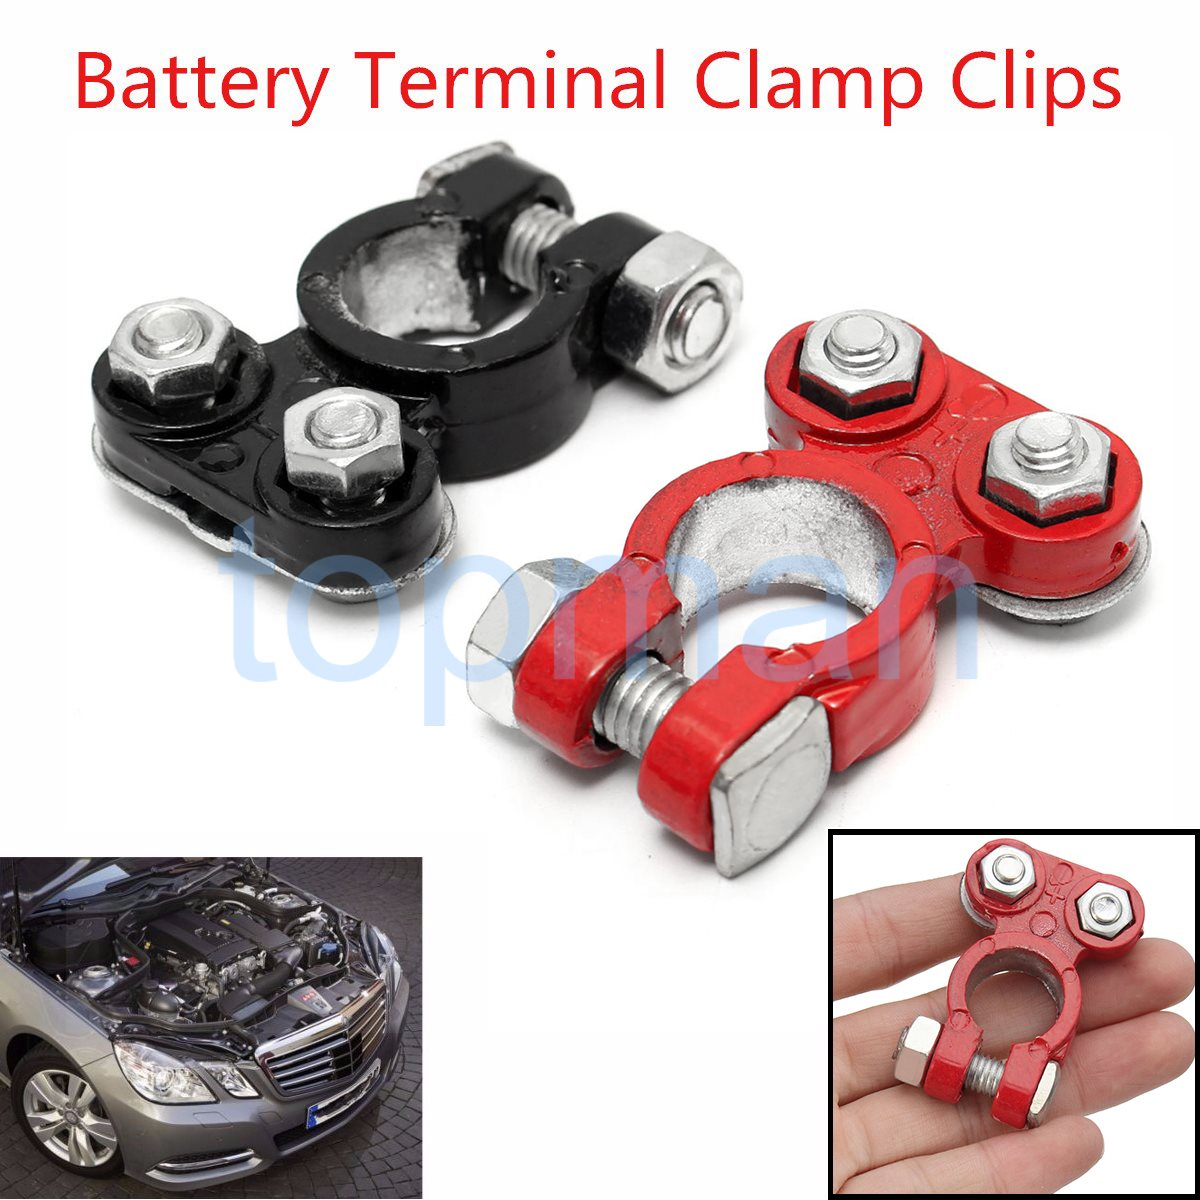 1 pair aluminum positive nagative car battery terminal clamp clips connector 53x37x17mm china